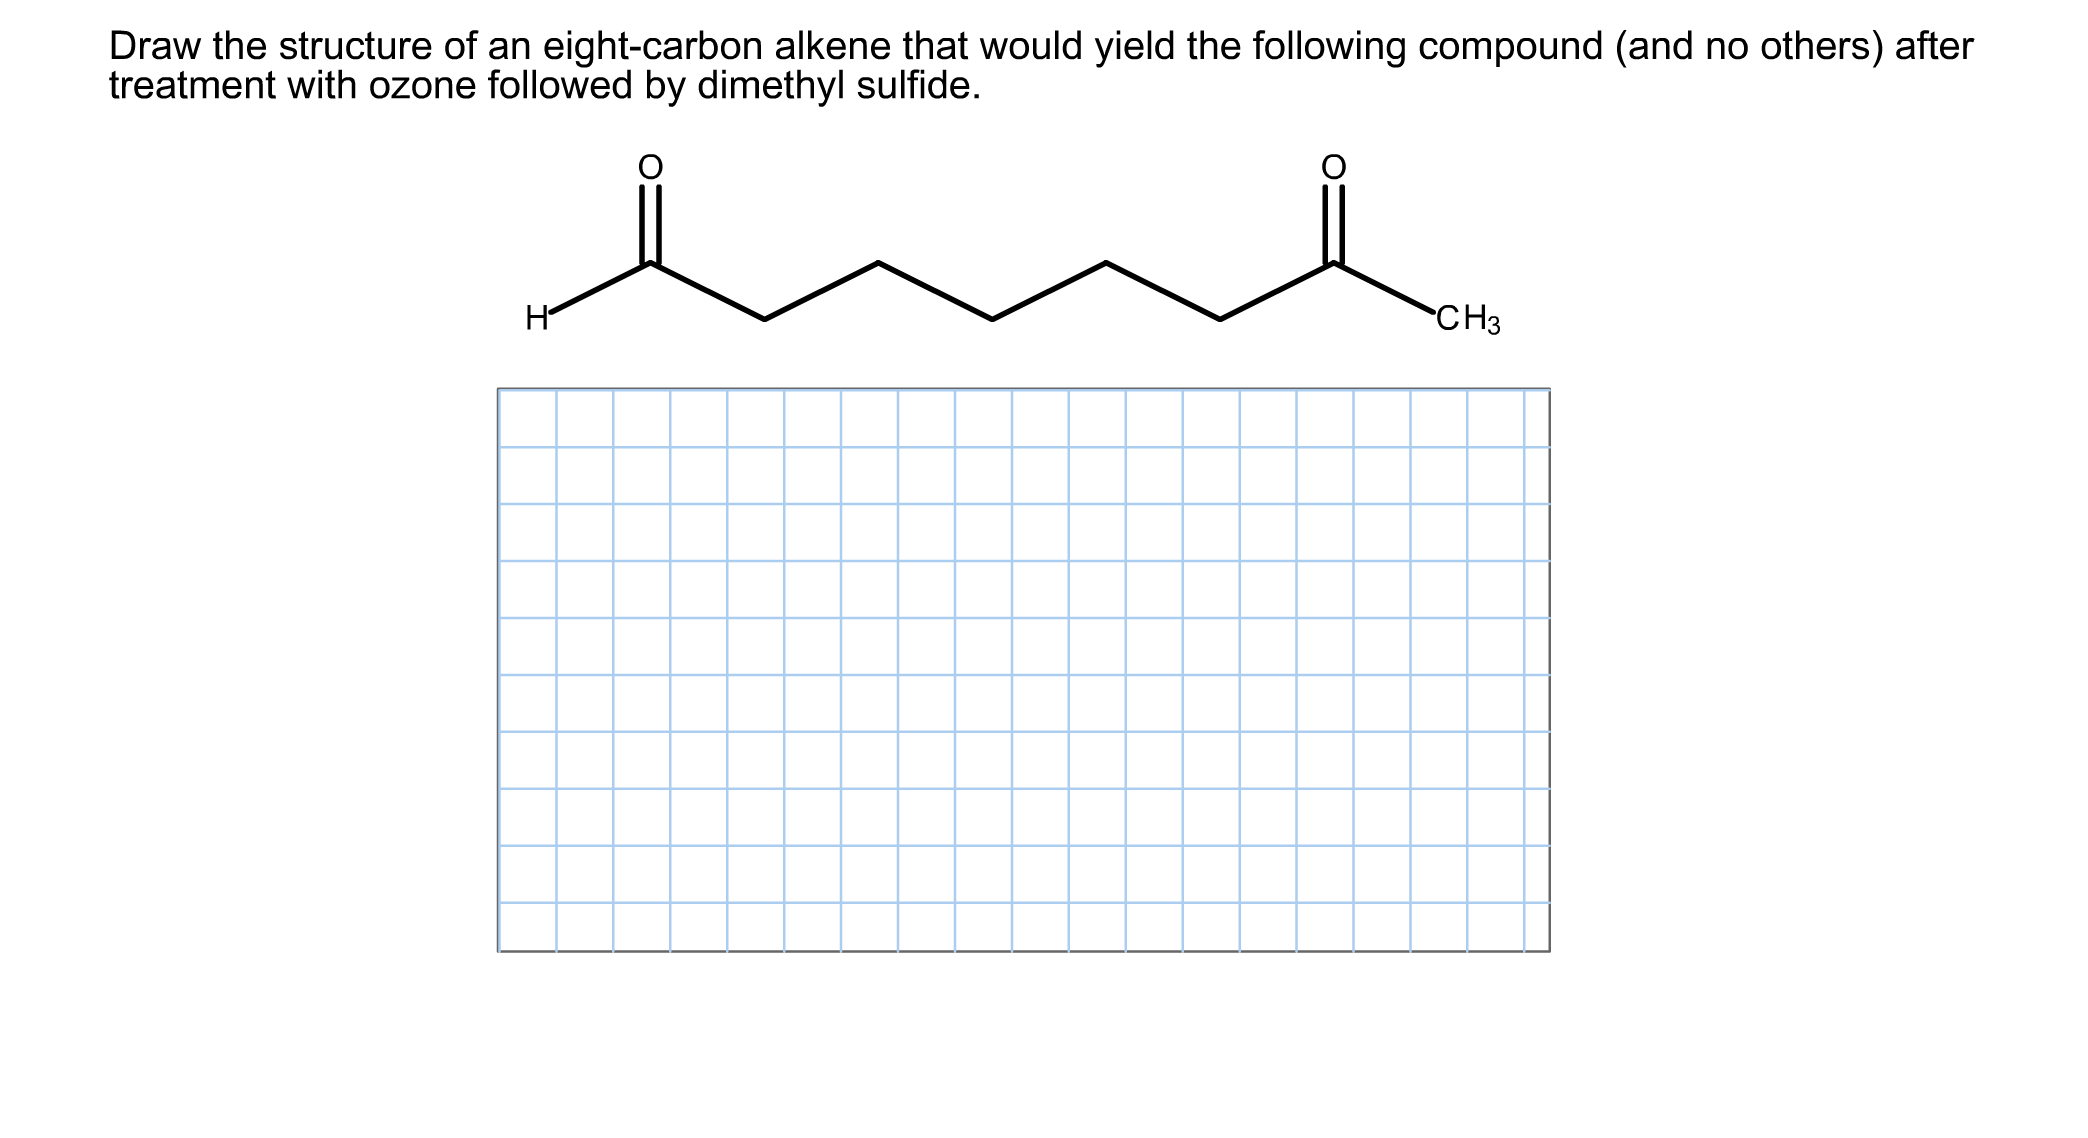 Draw The Structure Of An Eight-carbon Alkene That ...